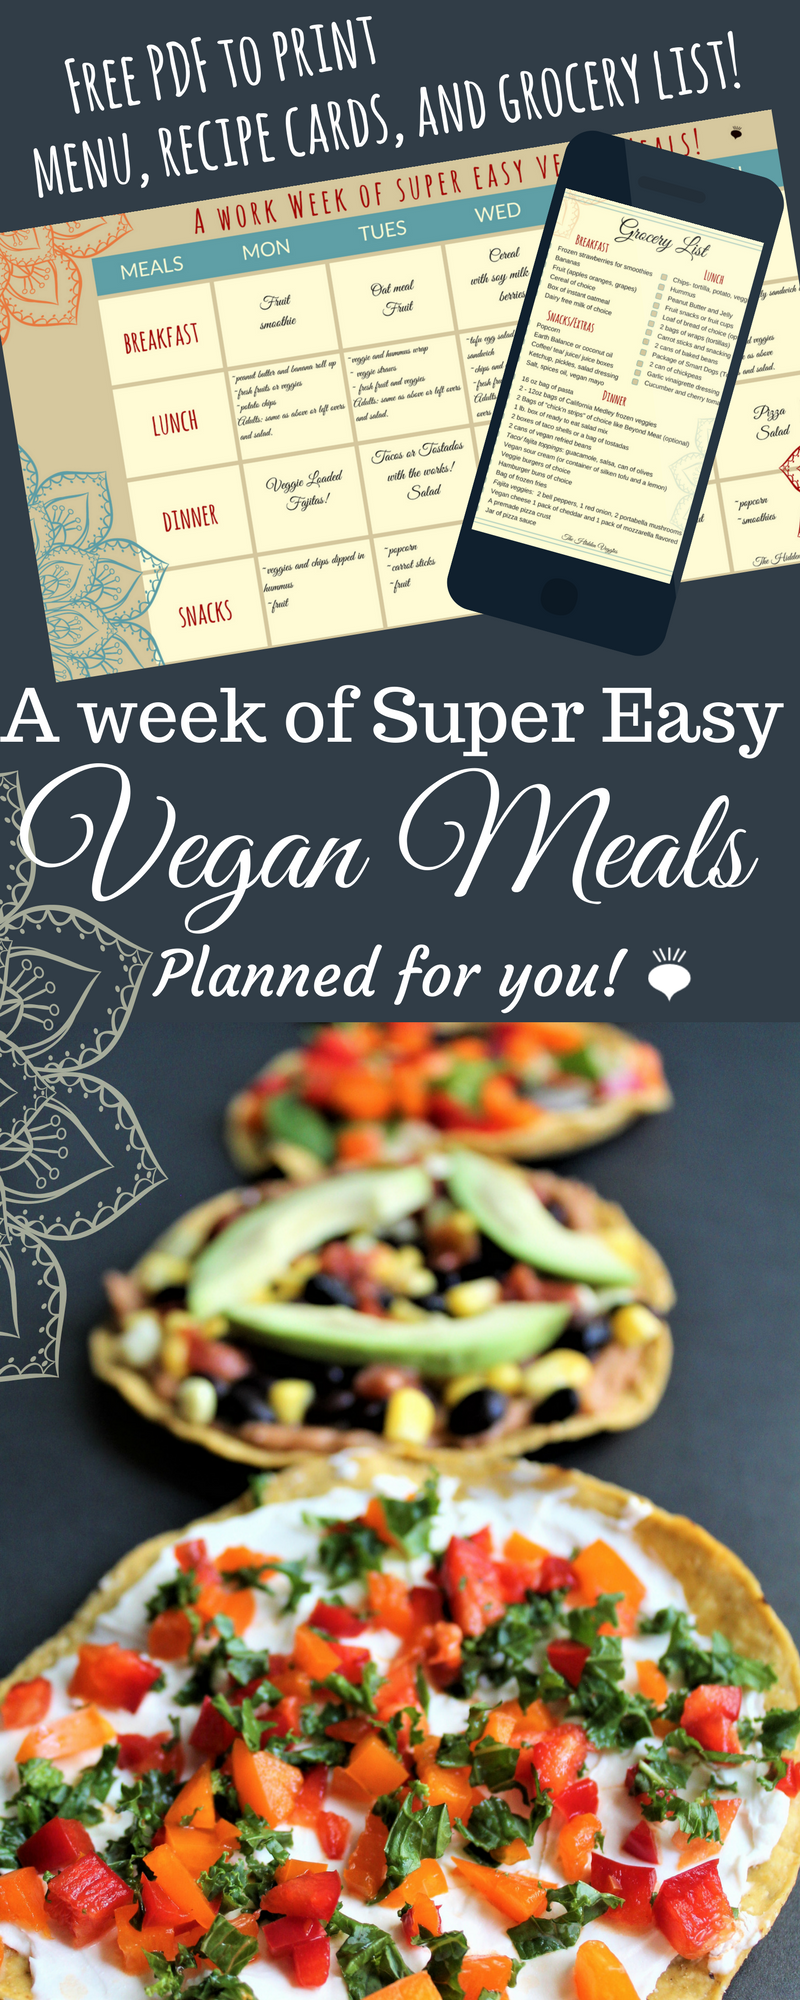 Easy vegan and gluten free meals planed for you free pdf and easy vegan and gluten free meals planed for you free pdf and printables includes meal planning calendar recipe cards grocery list tips forumfinder Choice Image